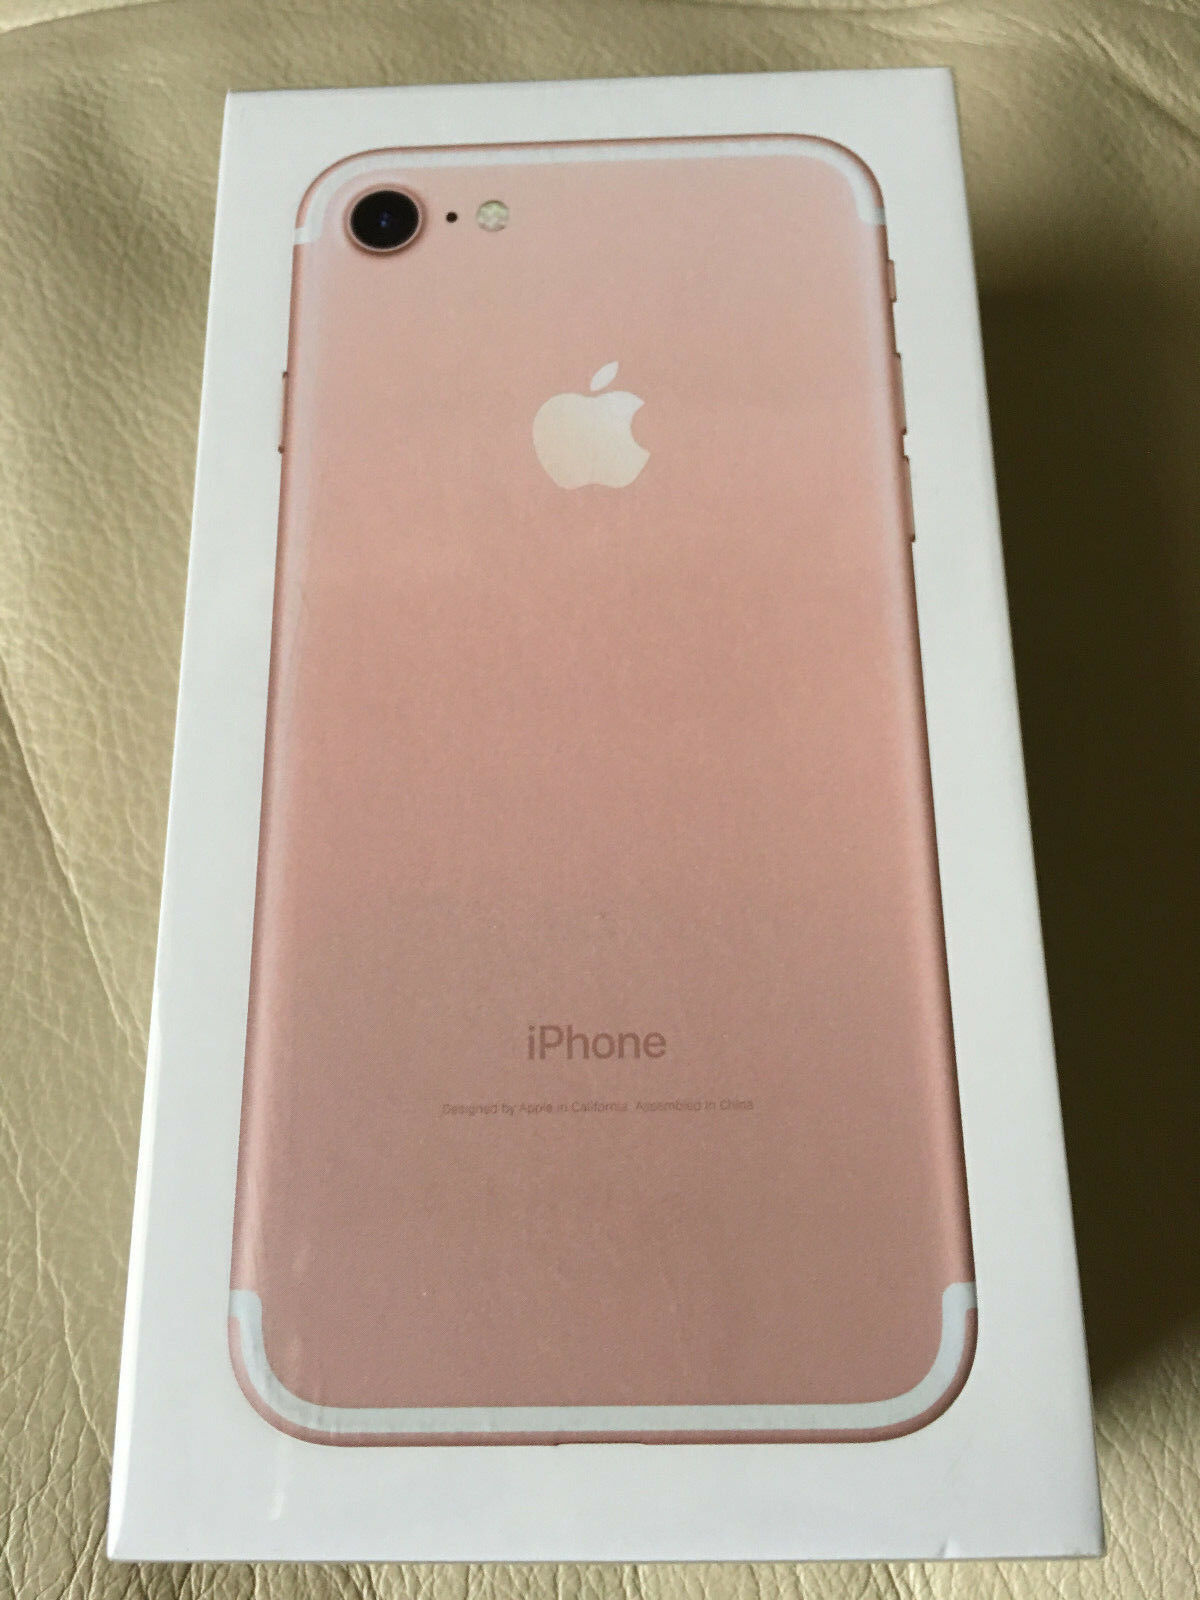 iphone 4 rose gold new amp sealed apple iphone 7 factory unlocked 32gb 6210